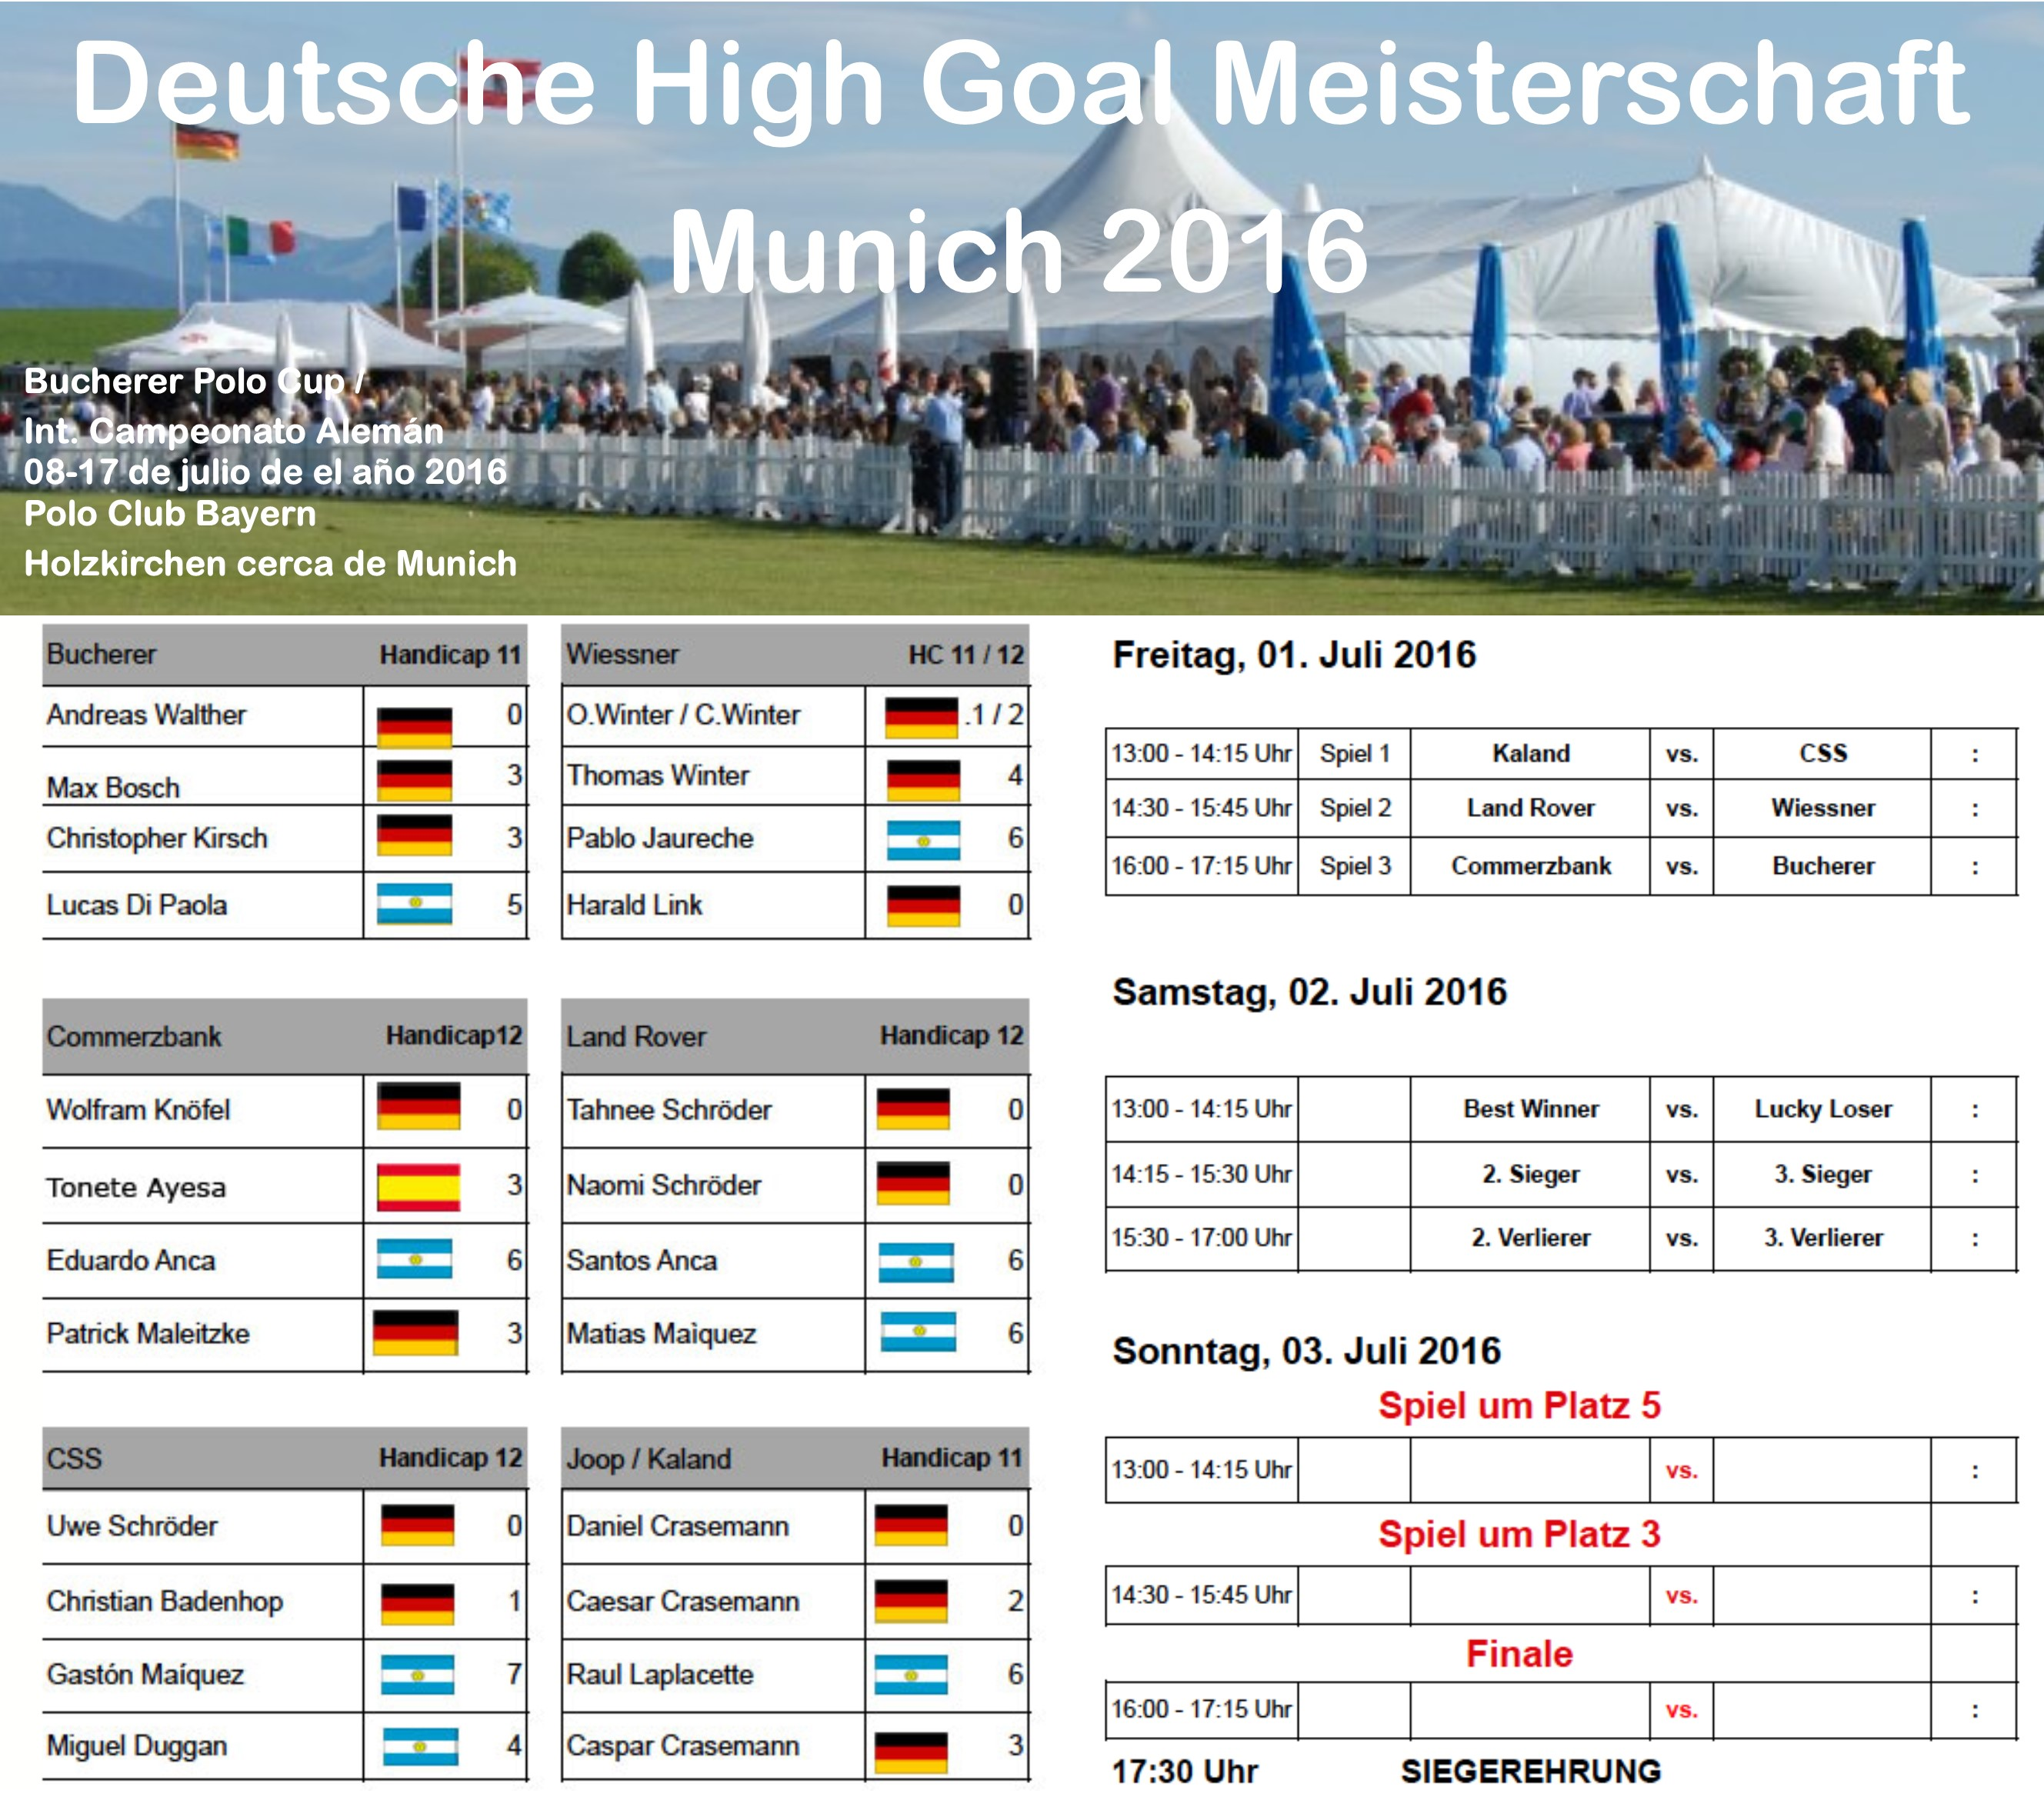 Deutsche High Goal Meisterschaft Munich 2016